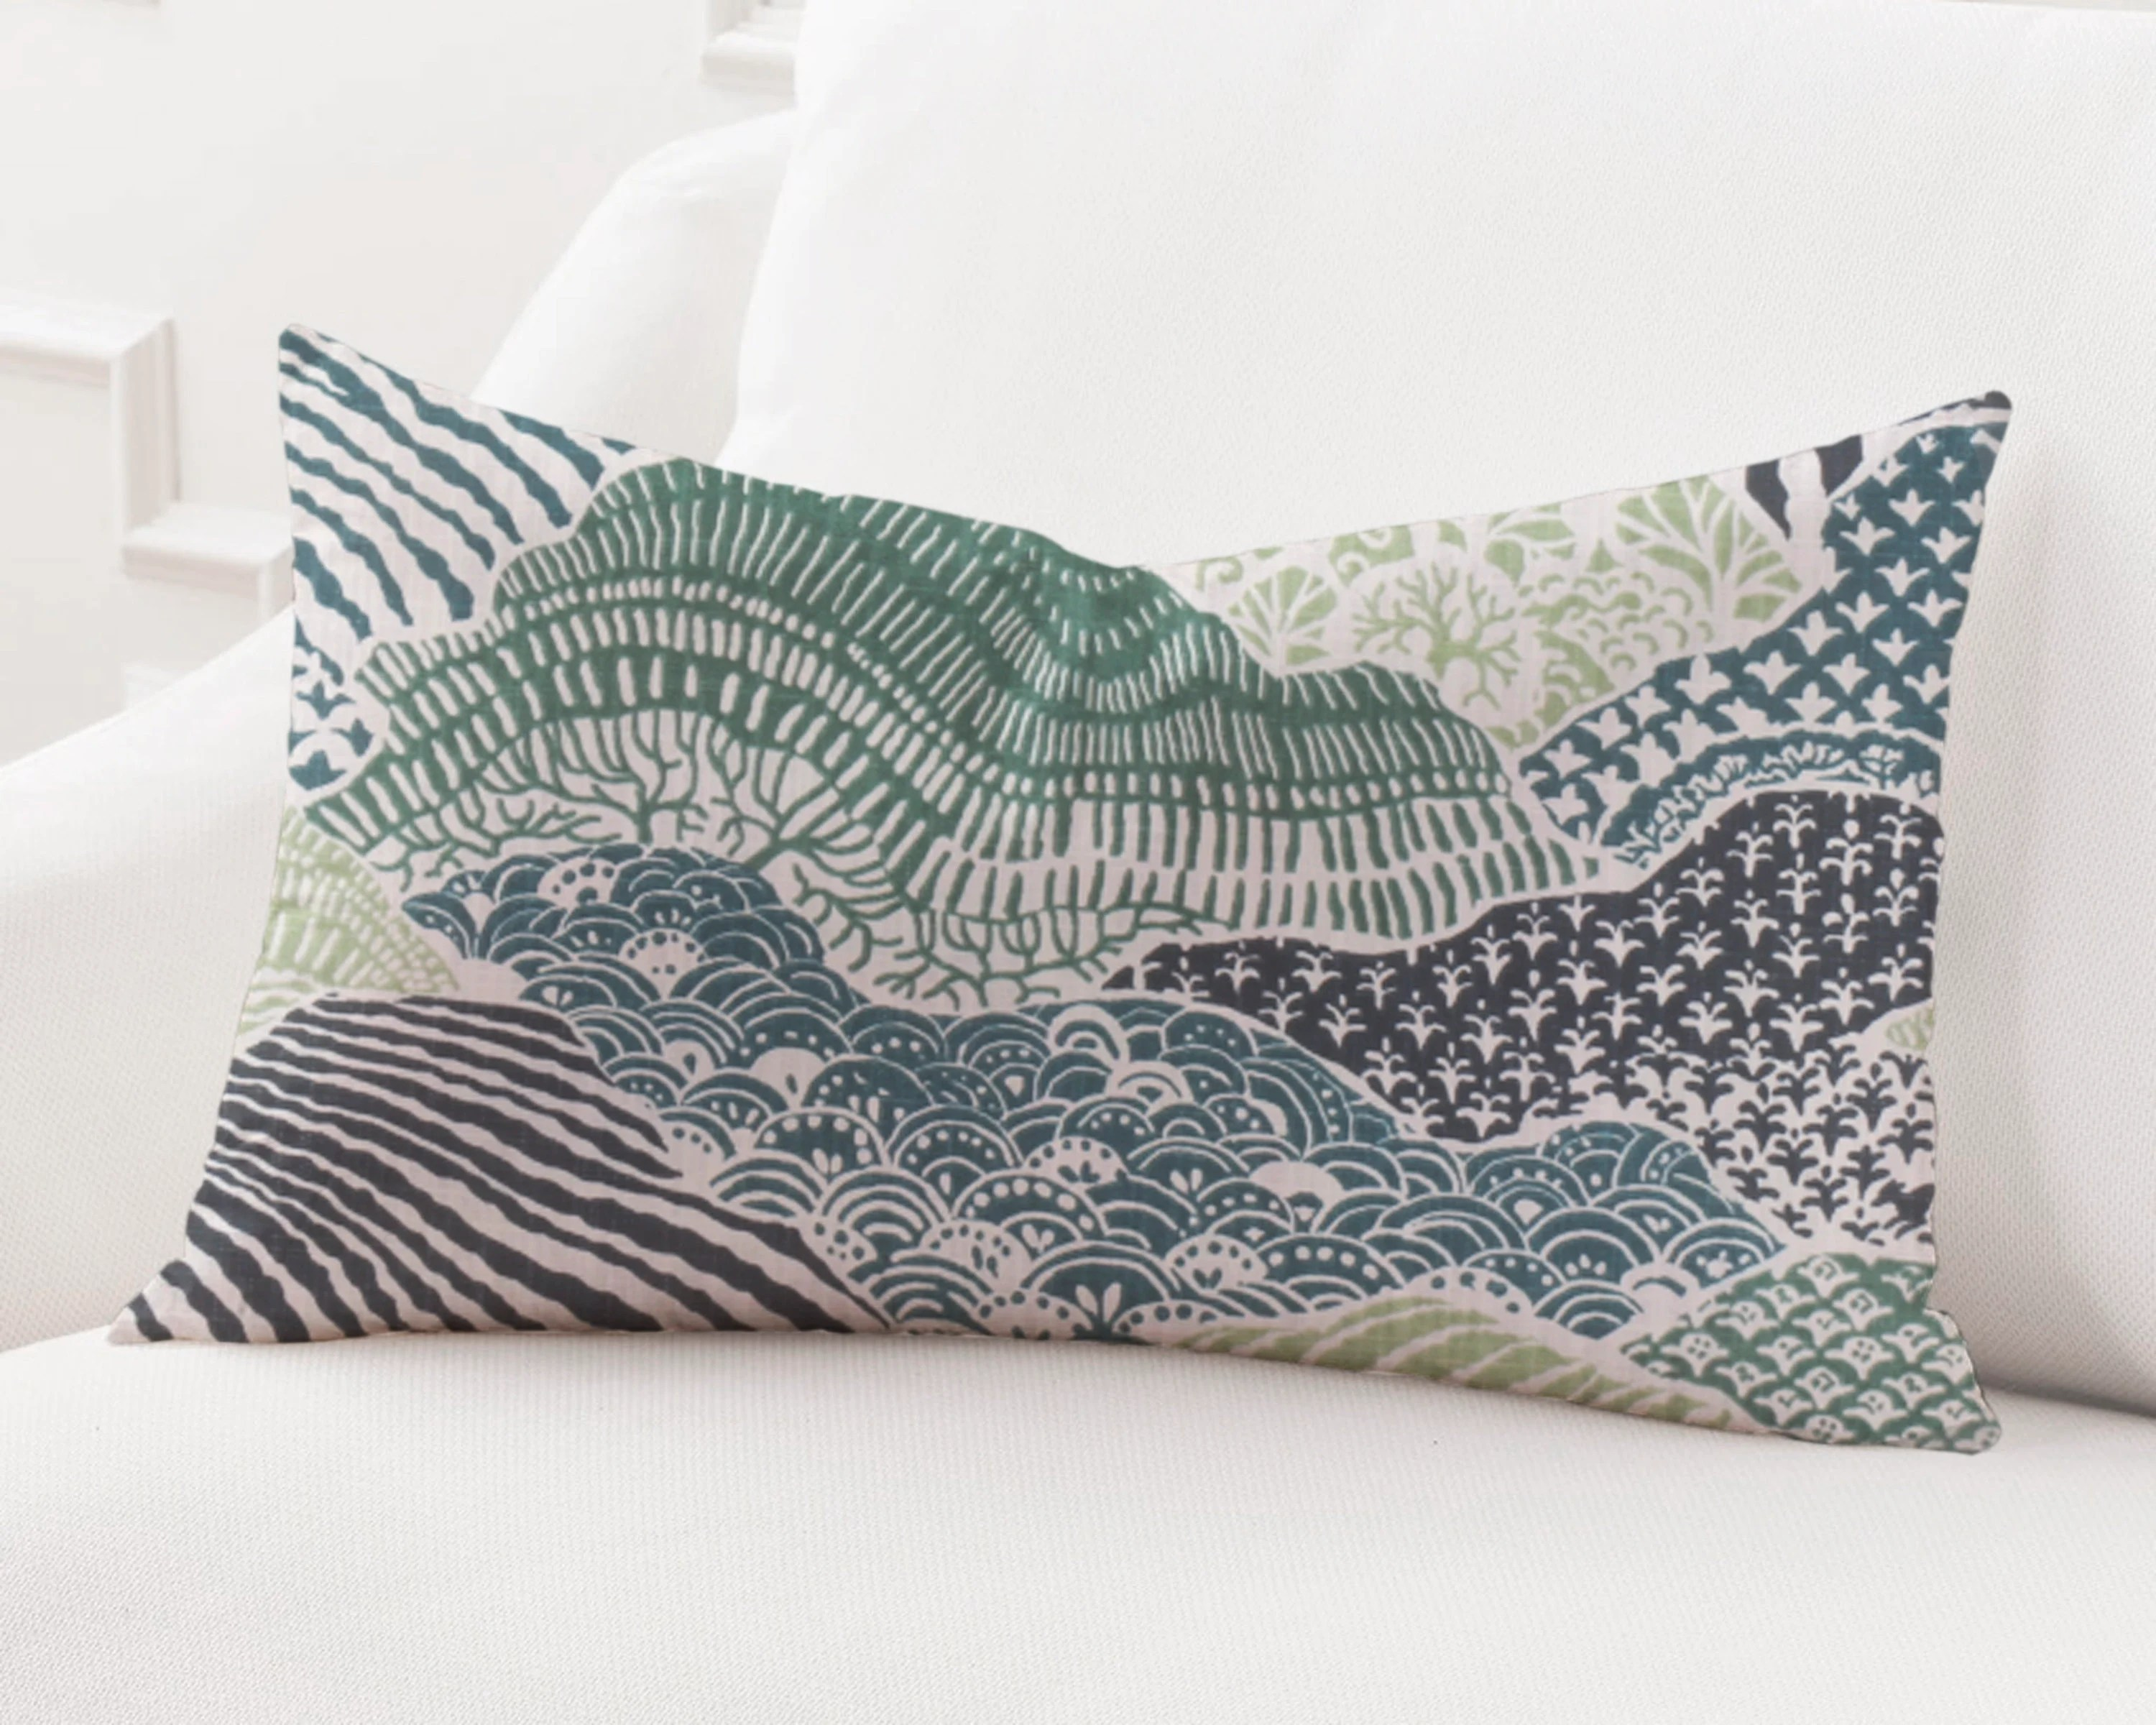 14x22 pillow cover etsy